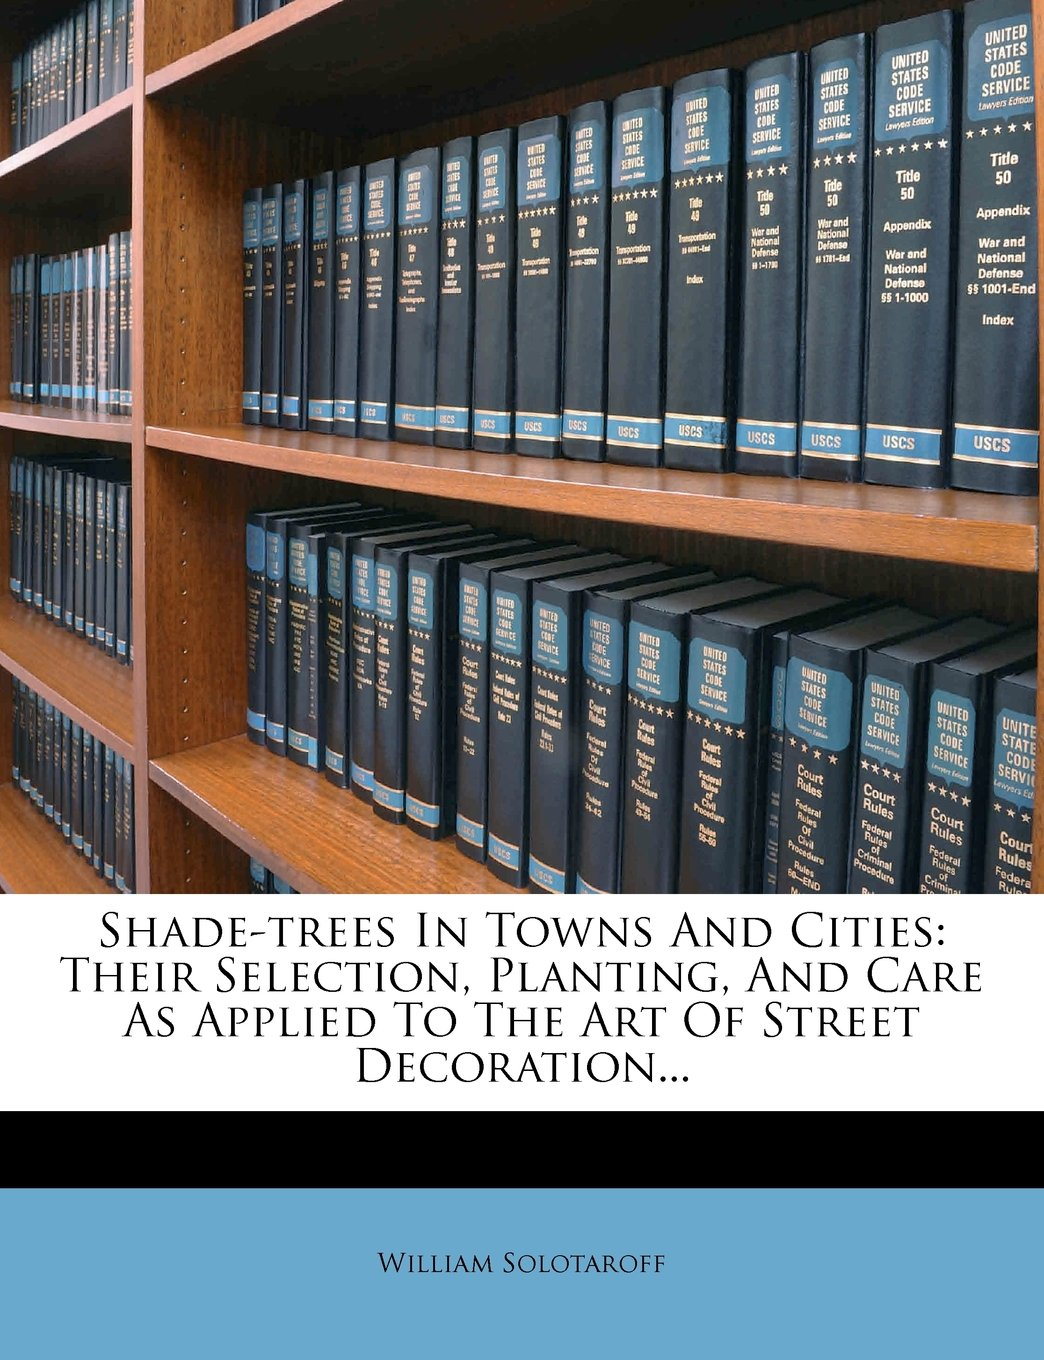 Shade-trees In Towns And Cities: Their Selection, Planting, And Care As Applied To The Art Of Street Decoration... ebook